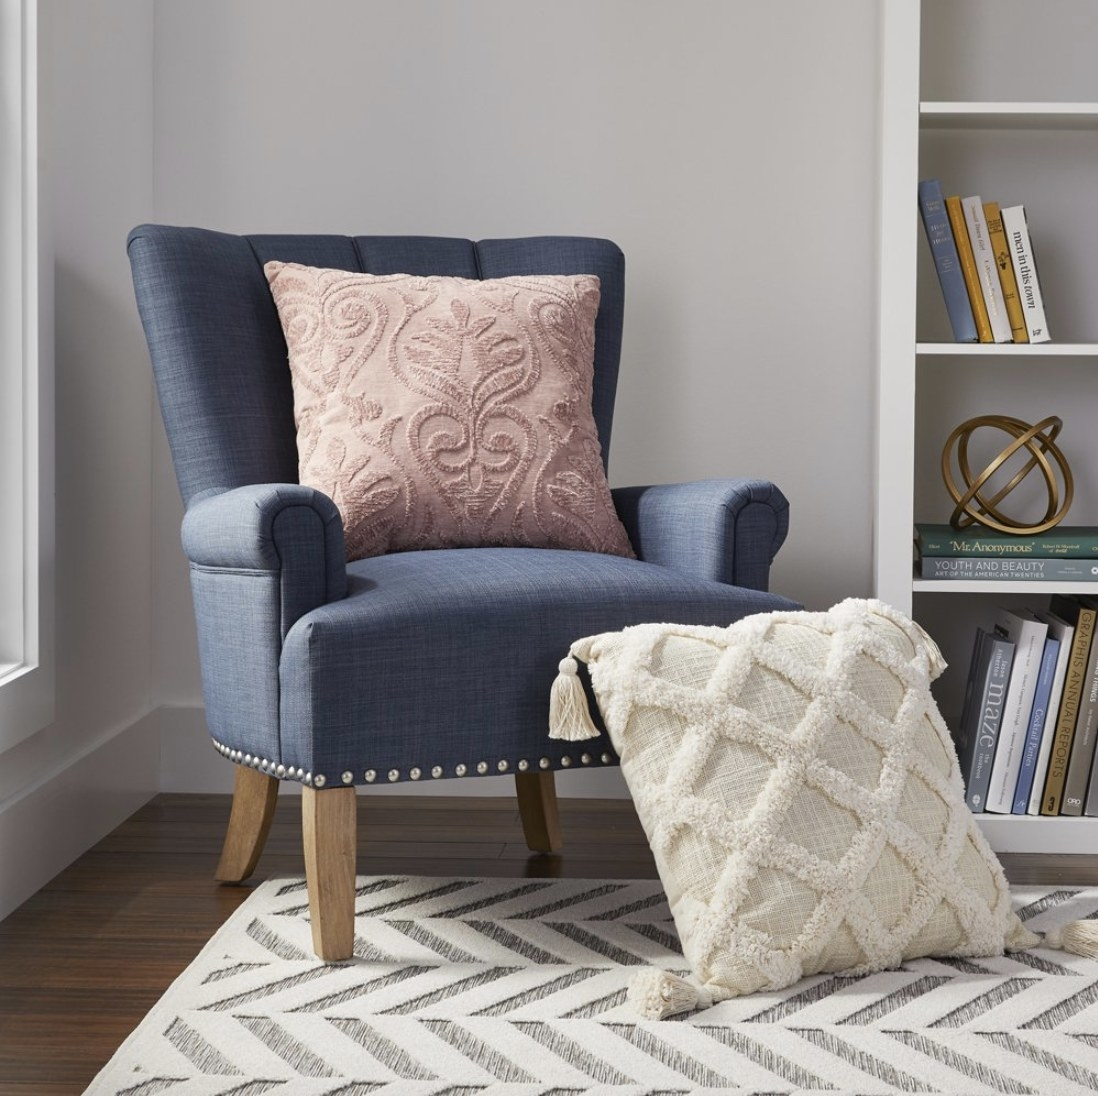 A cream textured throw pillow on the floor with tassels attached to each corner and a pink textured throw pillow on a blue chair